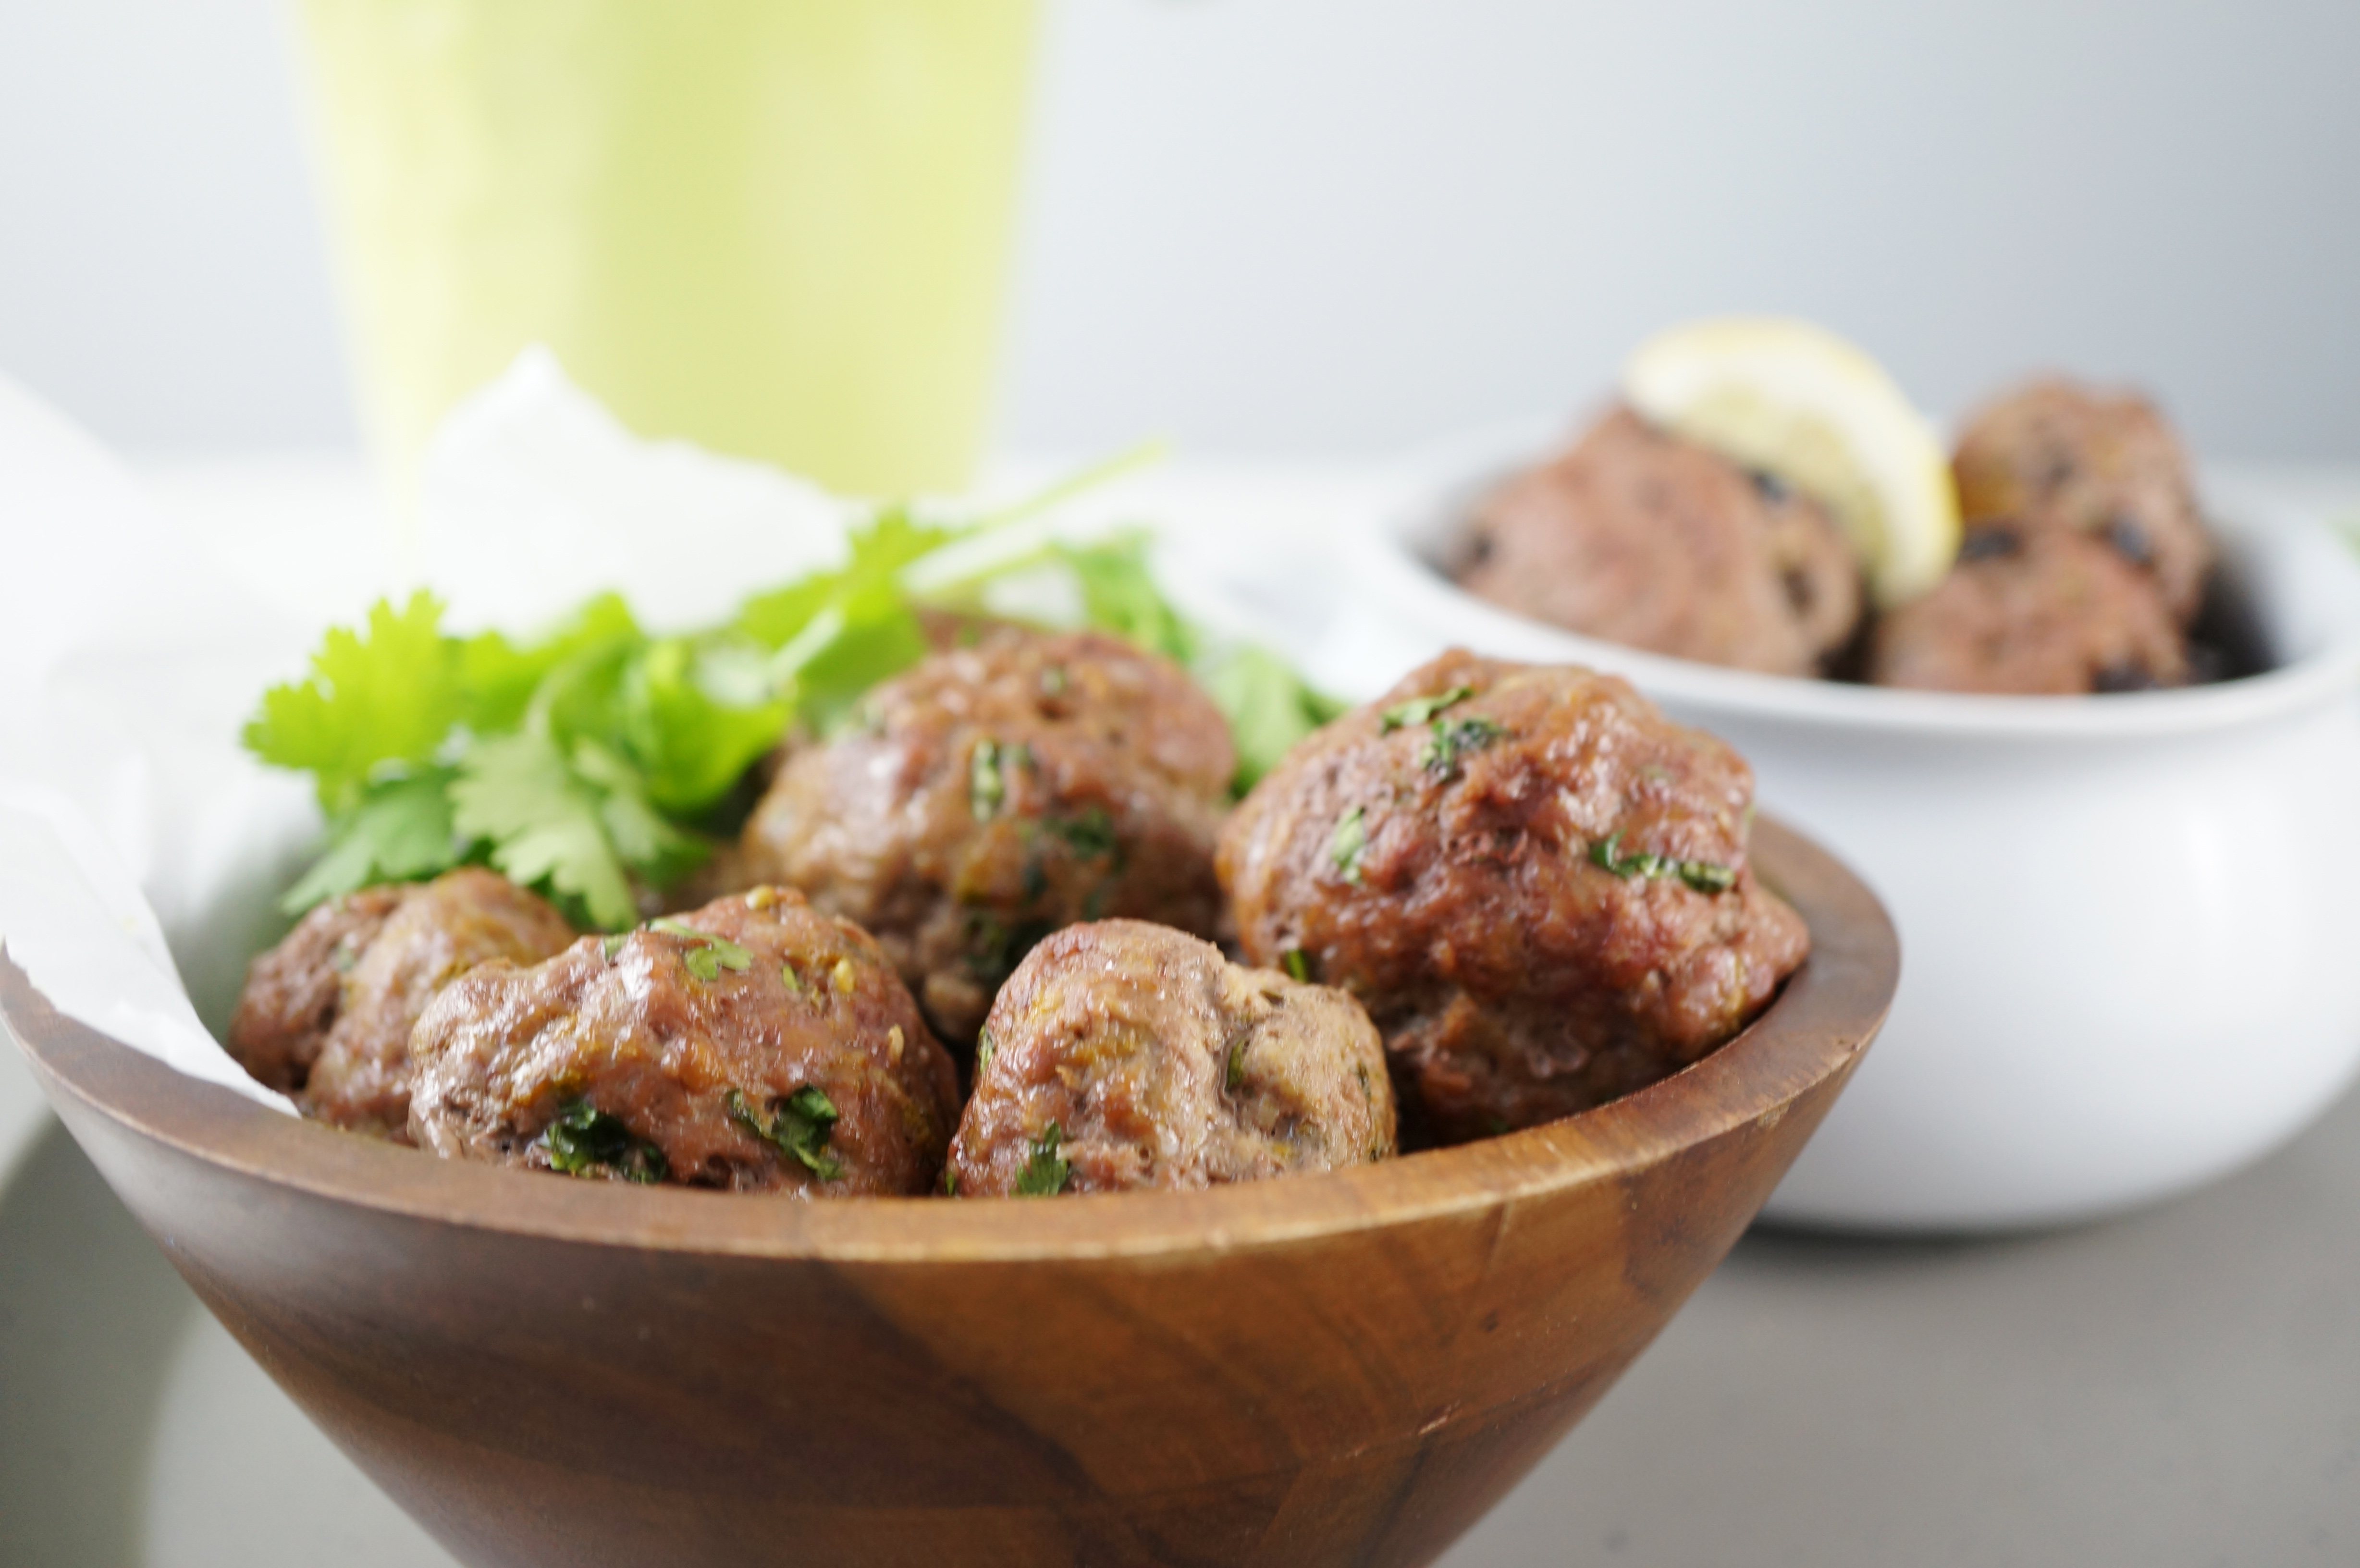 Anti Inflammatory Meatballs Paleo Aip Whole30 21dsd Grazed Amp Enthused